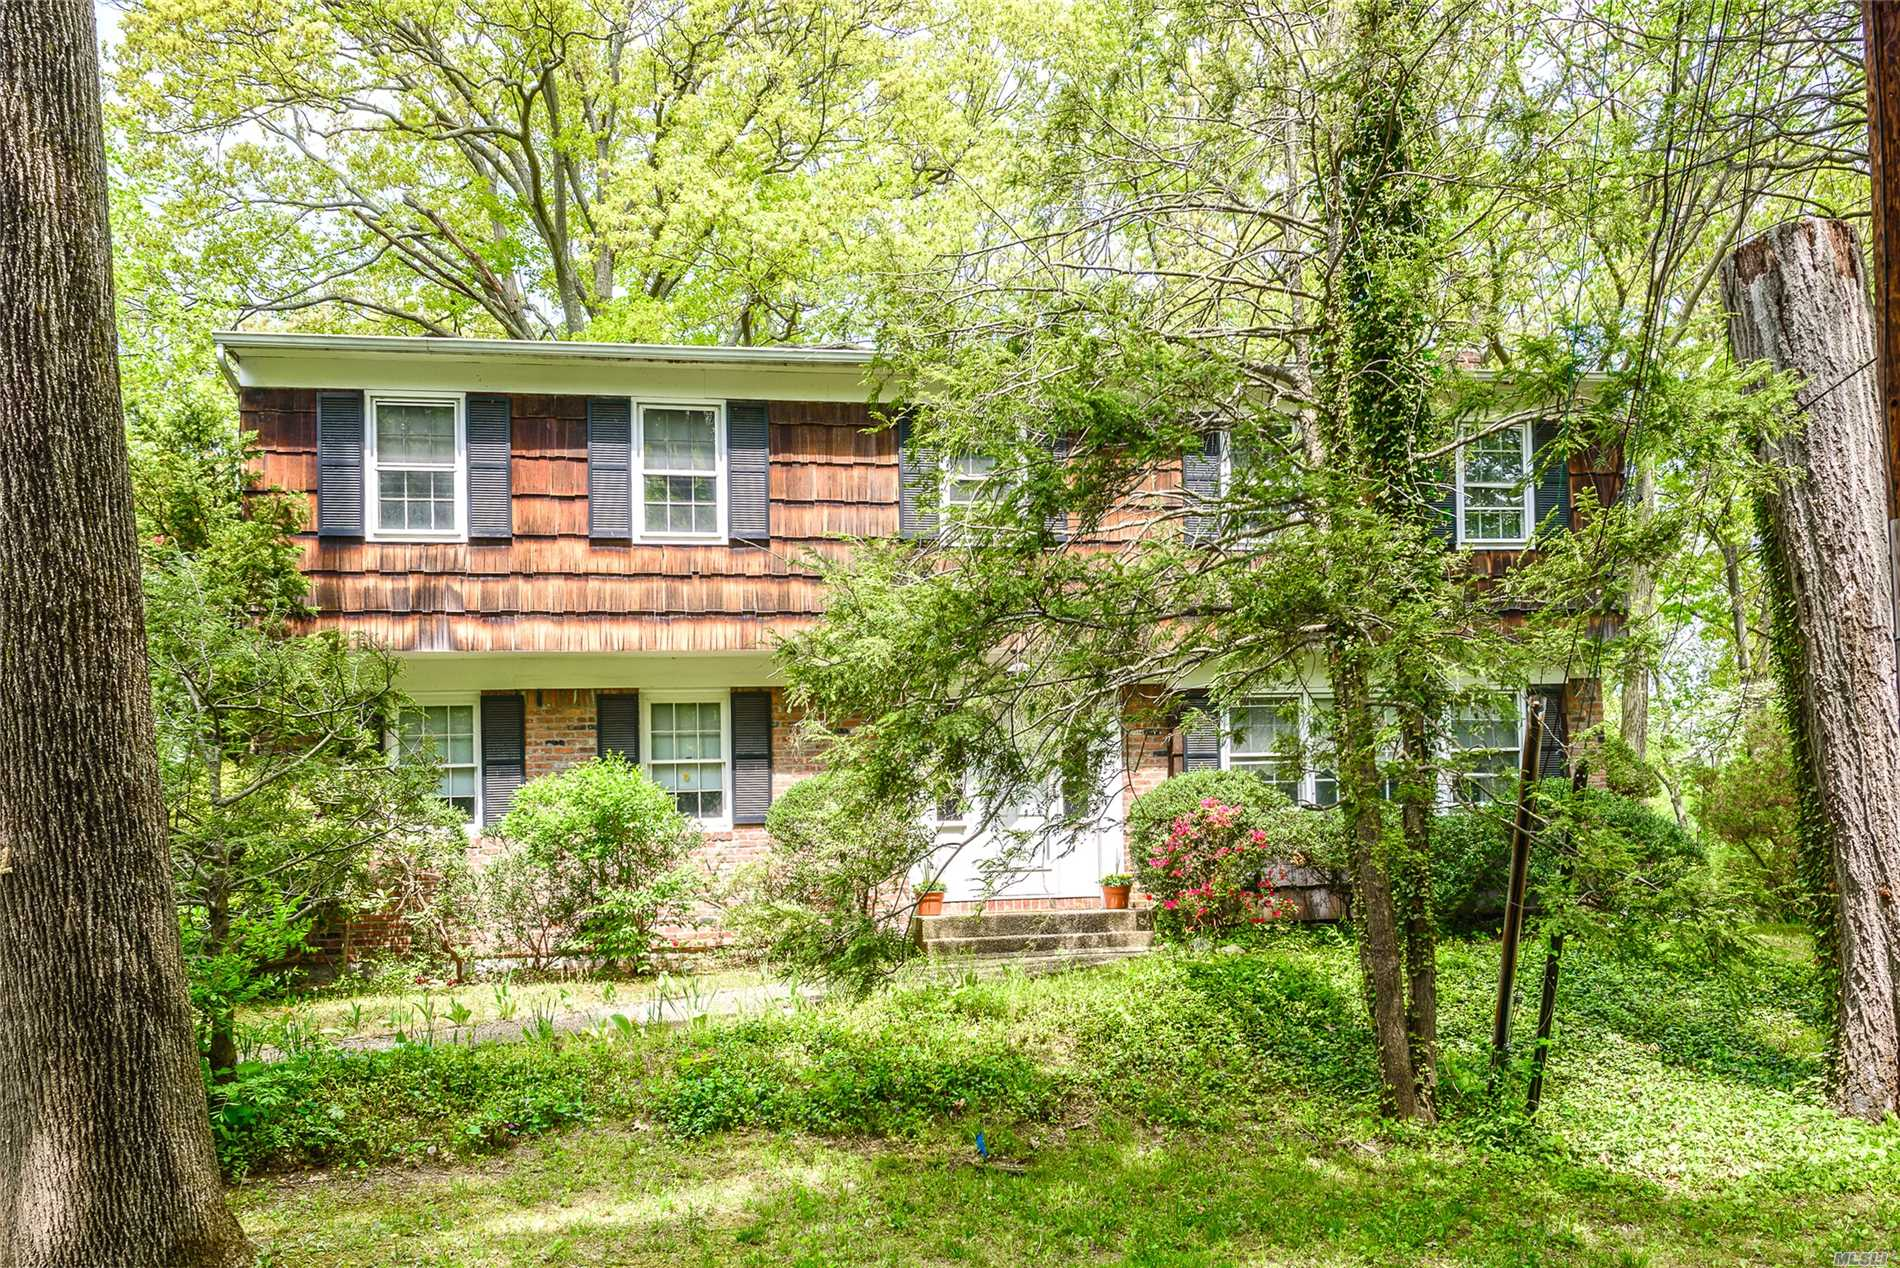 Roslyn Estates. New To Market! Perfectly Located Center Hall Colonial In The Heart Of Roslyn Estates. Featuring All Formal Rooms For Entertaining, 2nd Floor Has 4 Bedrooms Plus Library/Sitting Room. Priced To Sell!